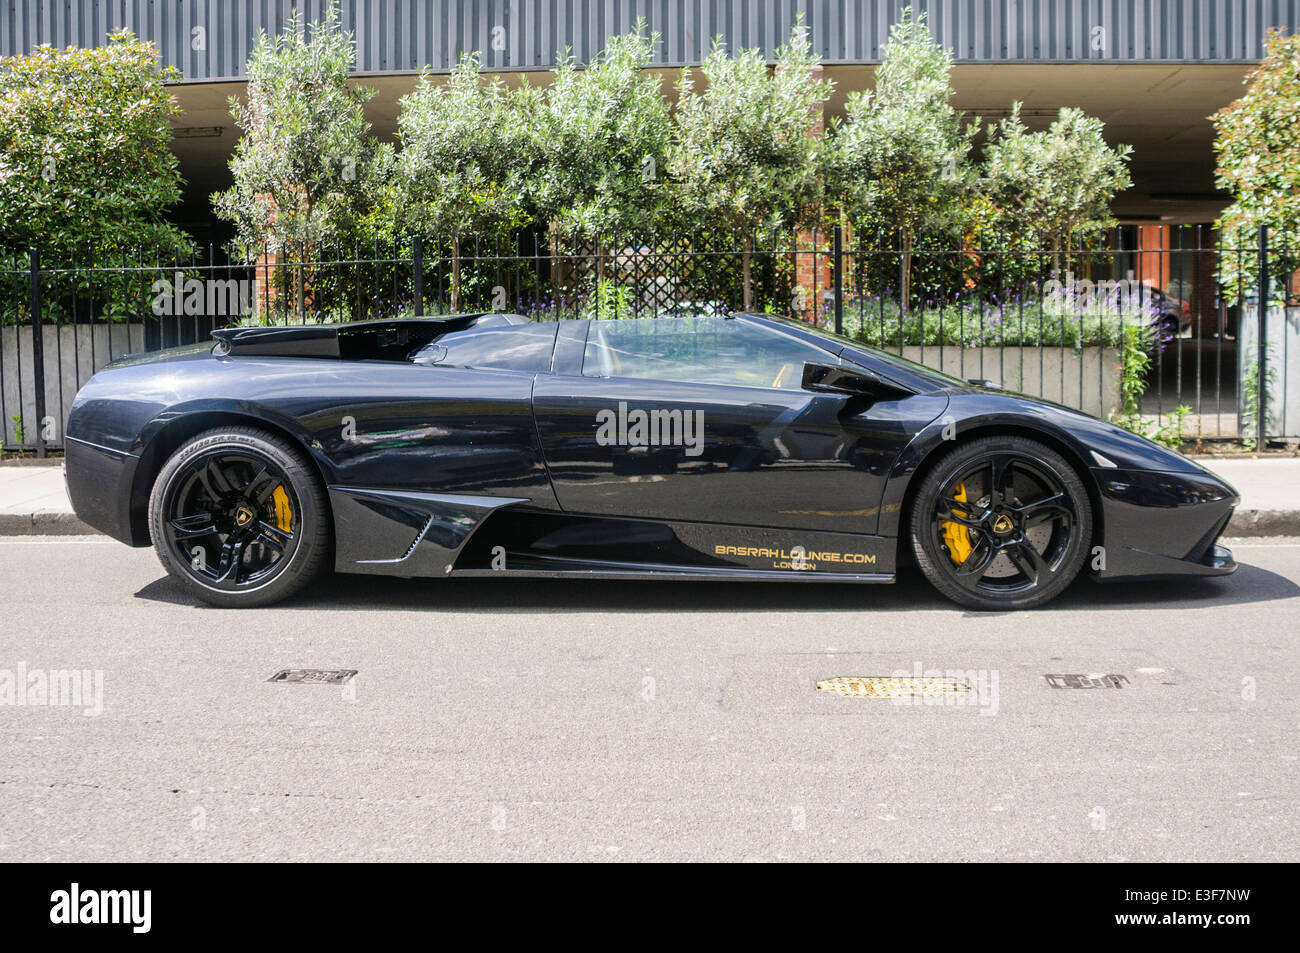 Black Lamborghini Gallardo   Stock Image